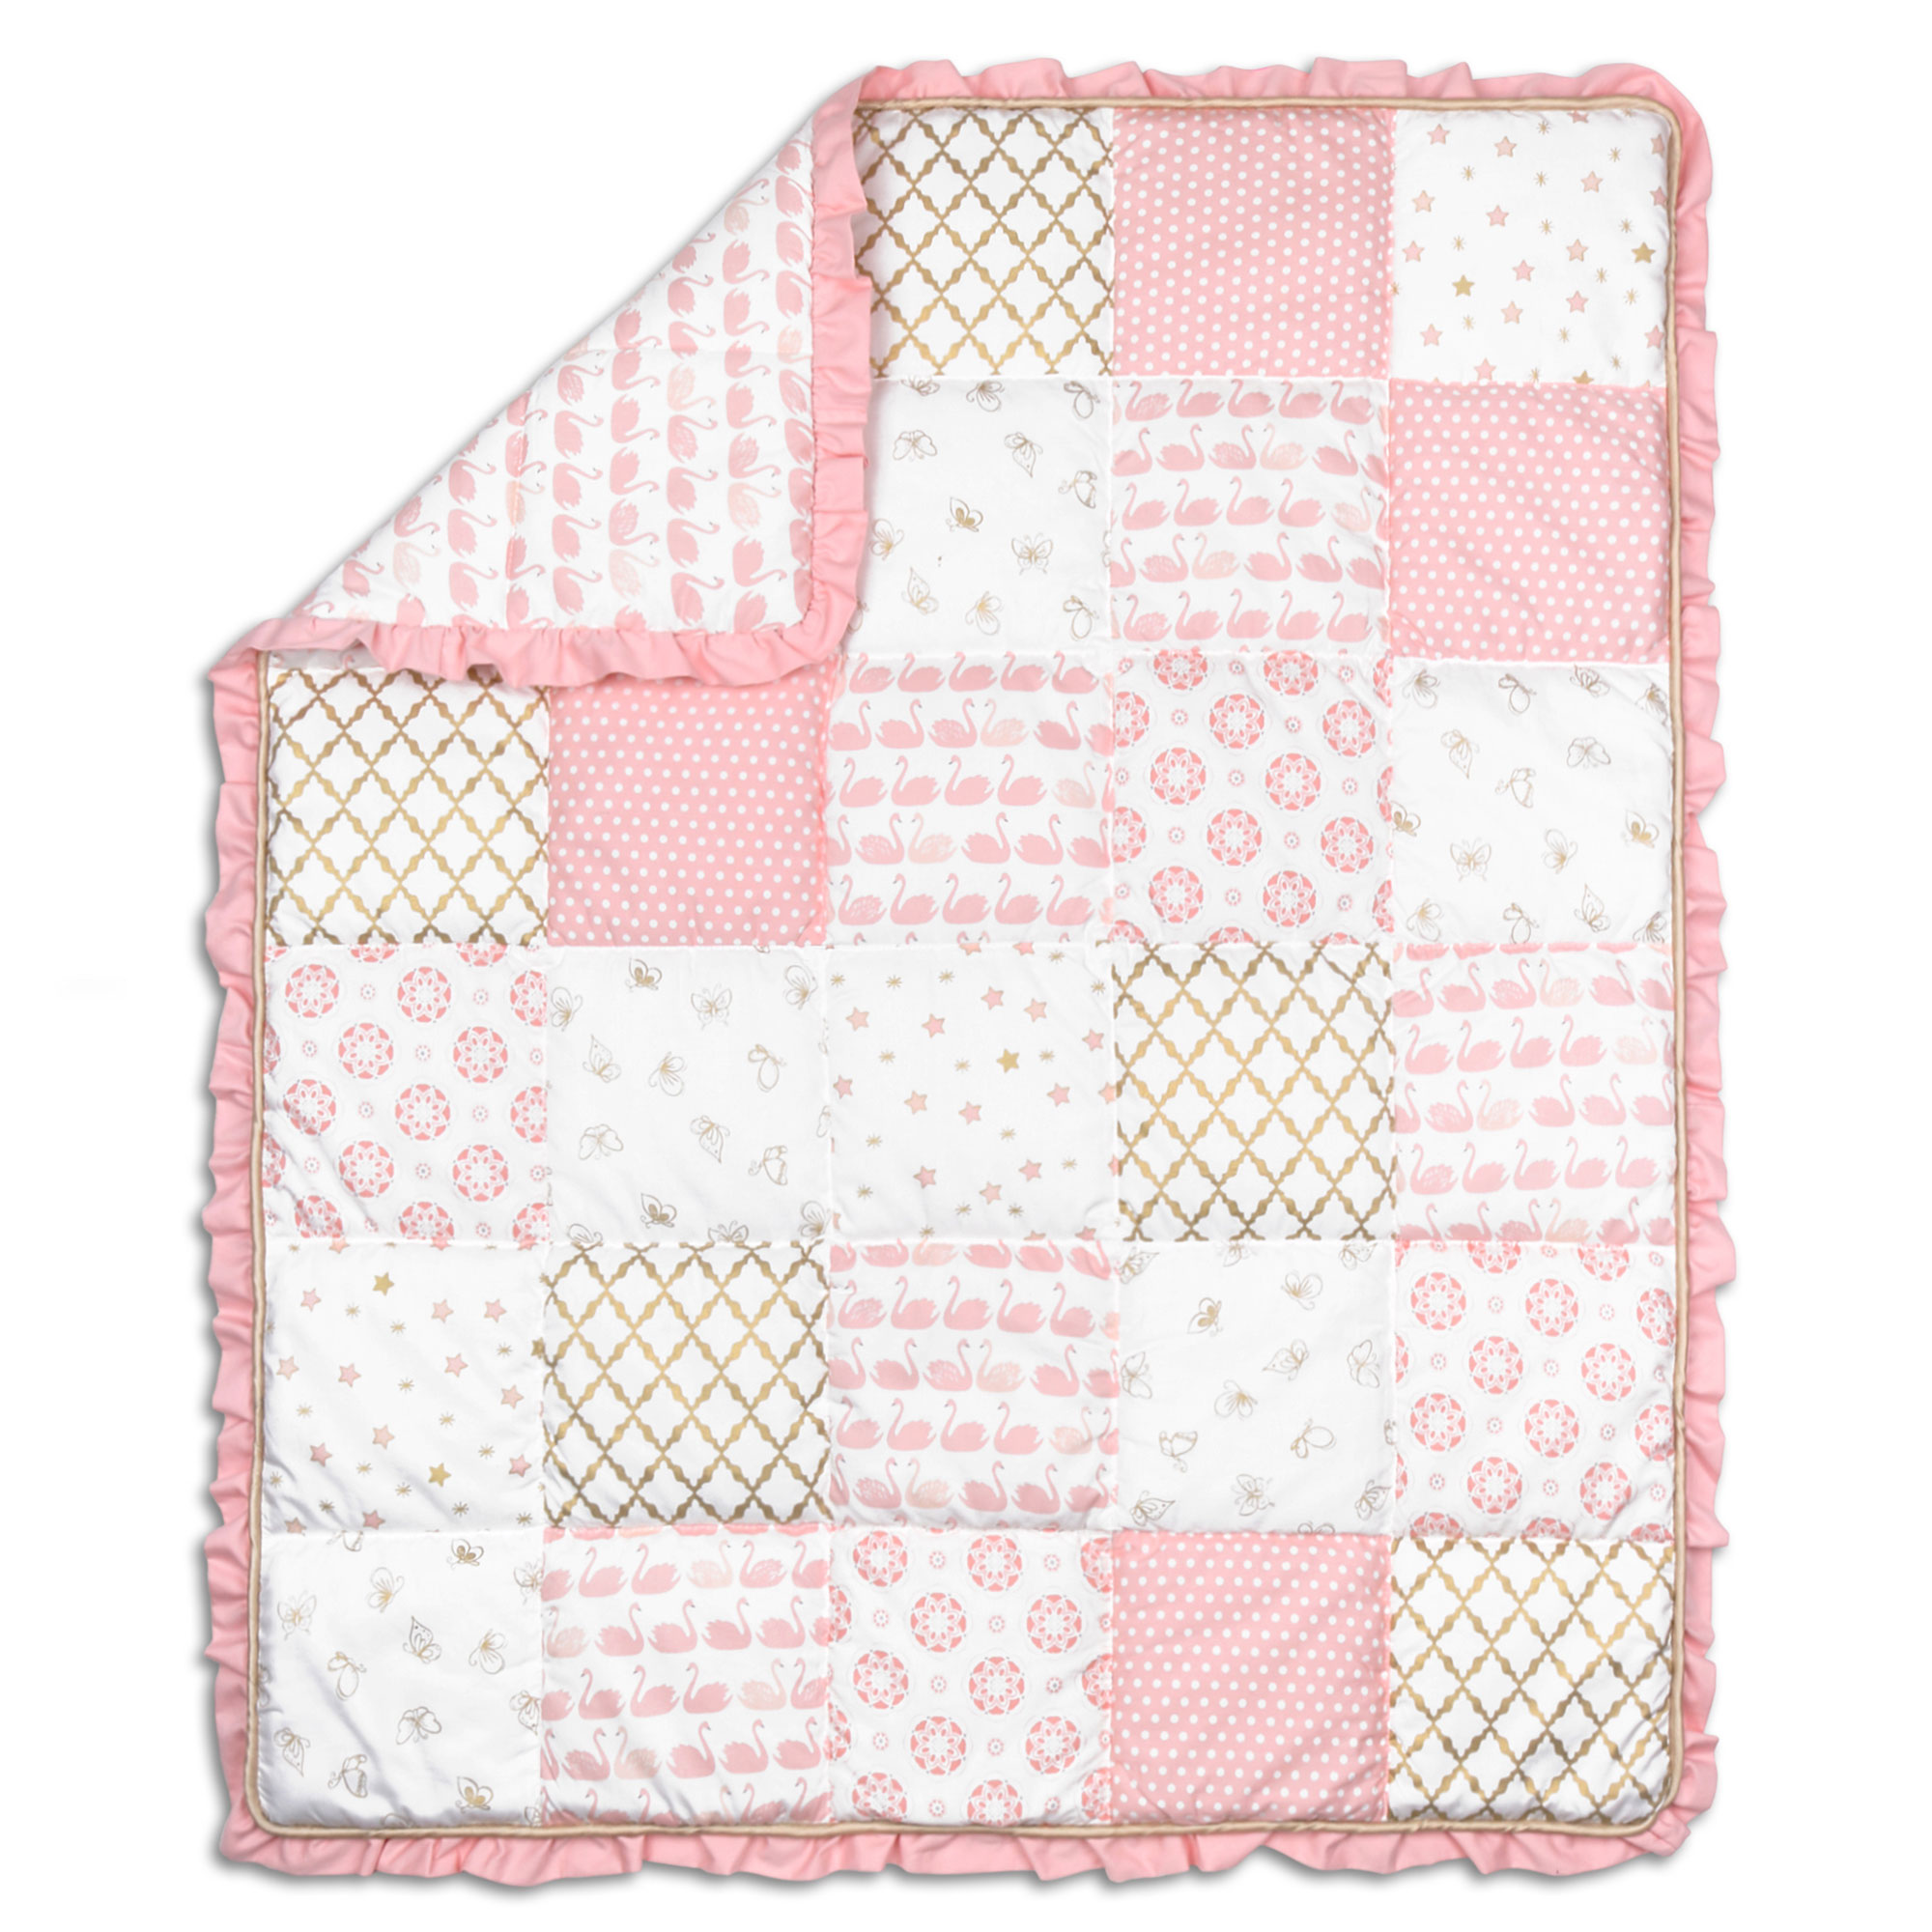 Coral Pink Swan and Gold Trellis Patchwork Quilt by The Peanut Shell